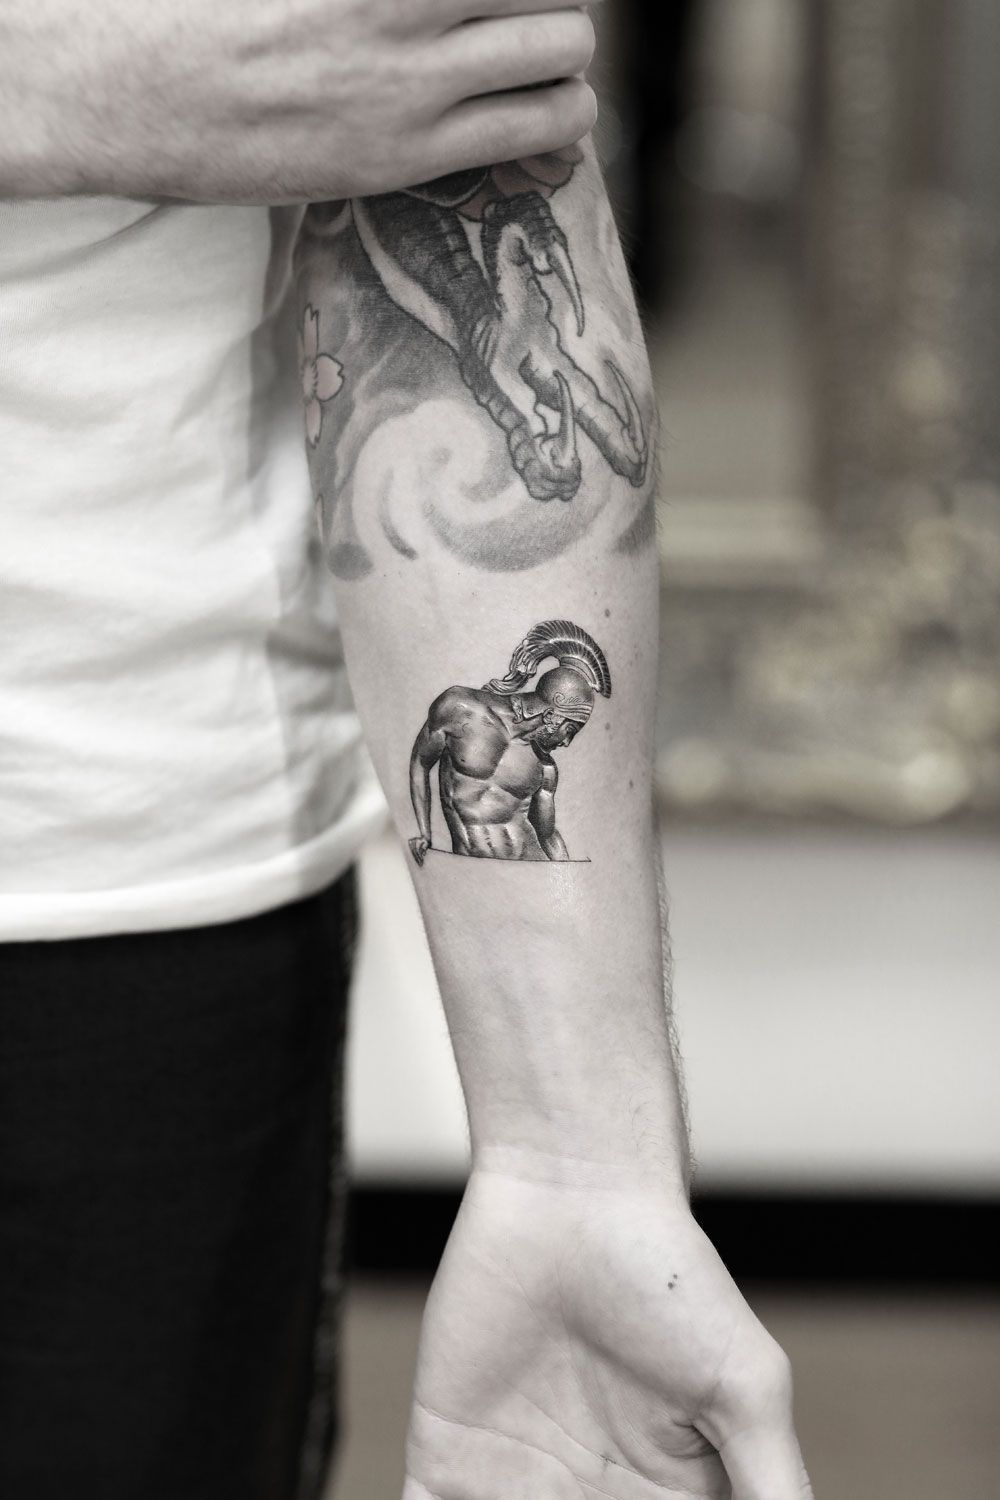 This is a Single Needle tattoo of a statue created by